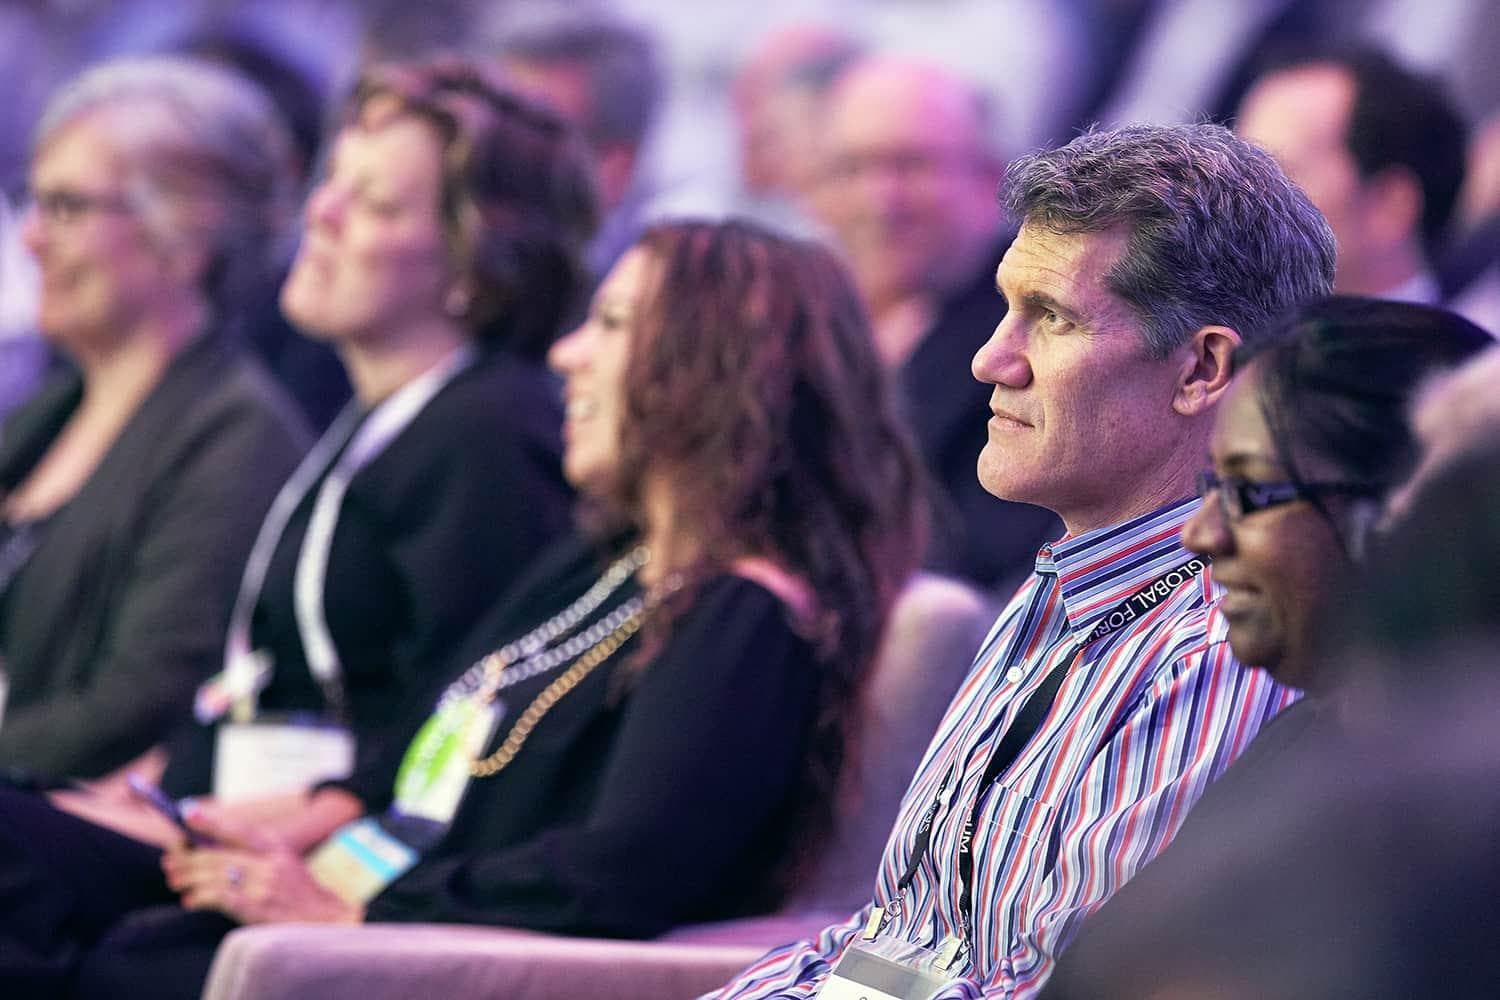 Man watching the stage in the audience at SAS Global Forum